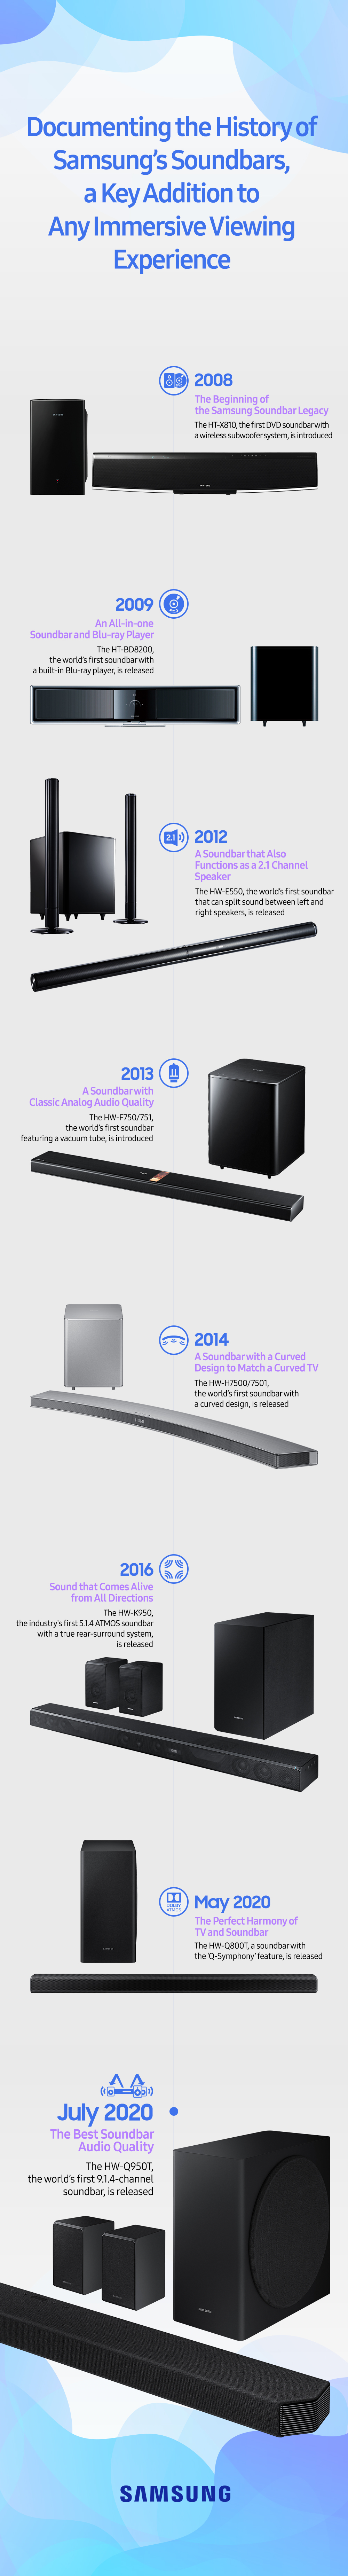 [The Sound of the Future] ③ Documenting the History of Samsung's Soundbars, a Key Addition to Any Immersive Viewing Experience - Image 1